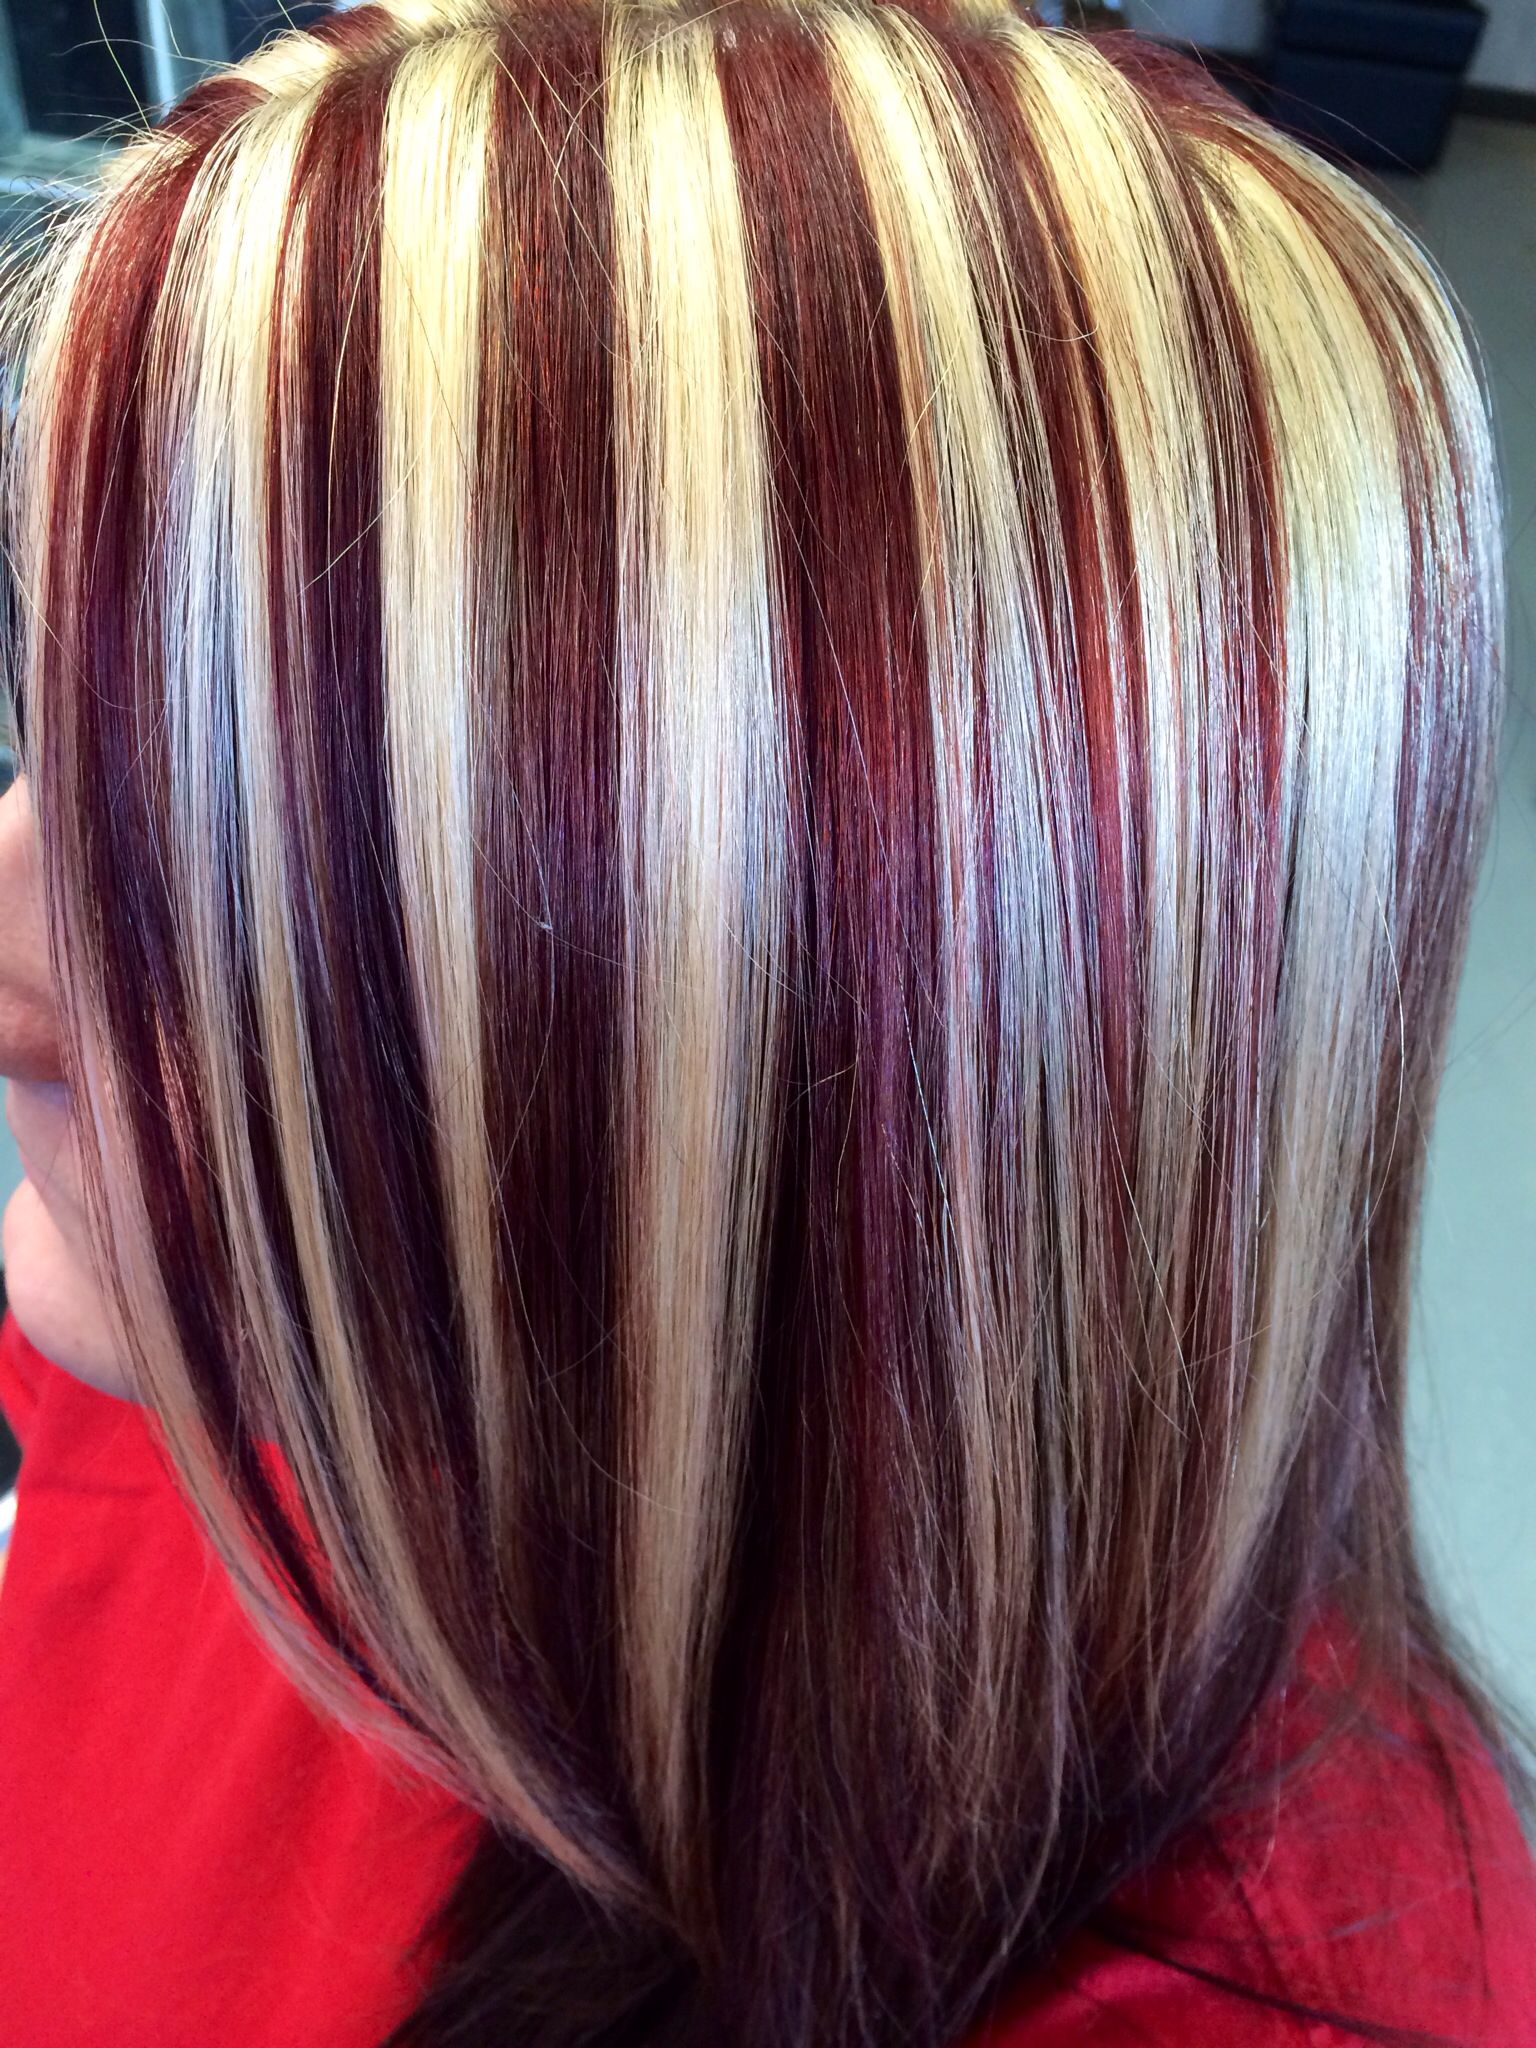 #red #Lowlights #Blonde/Red# Haircolor | Hair | Pinterest ... |Red Brown Hair Color With Blonde Highlights